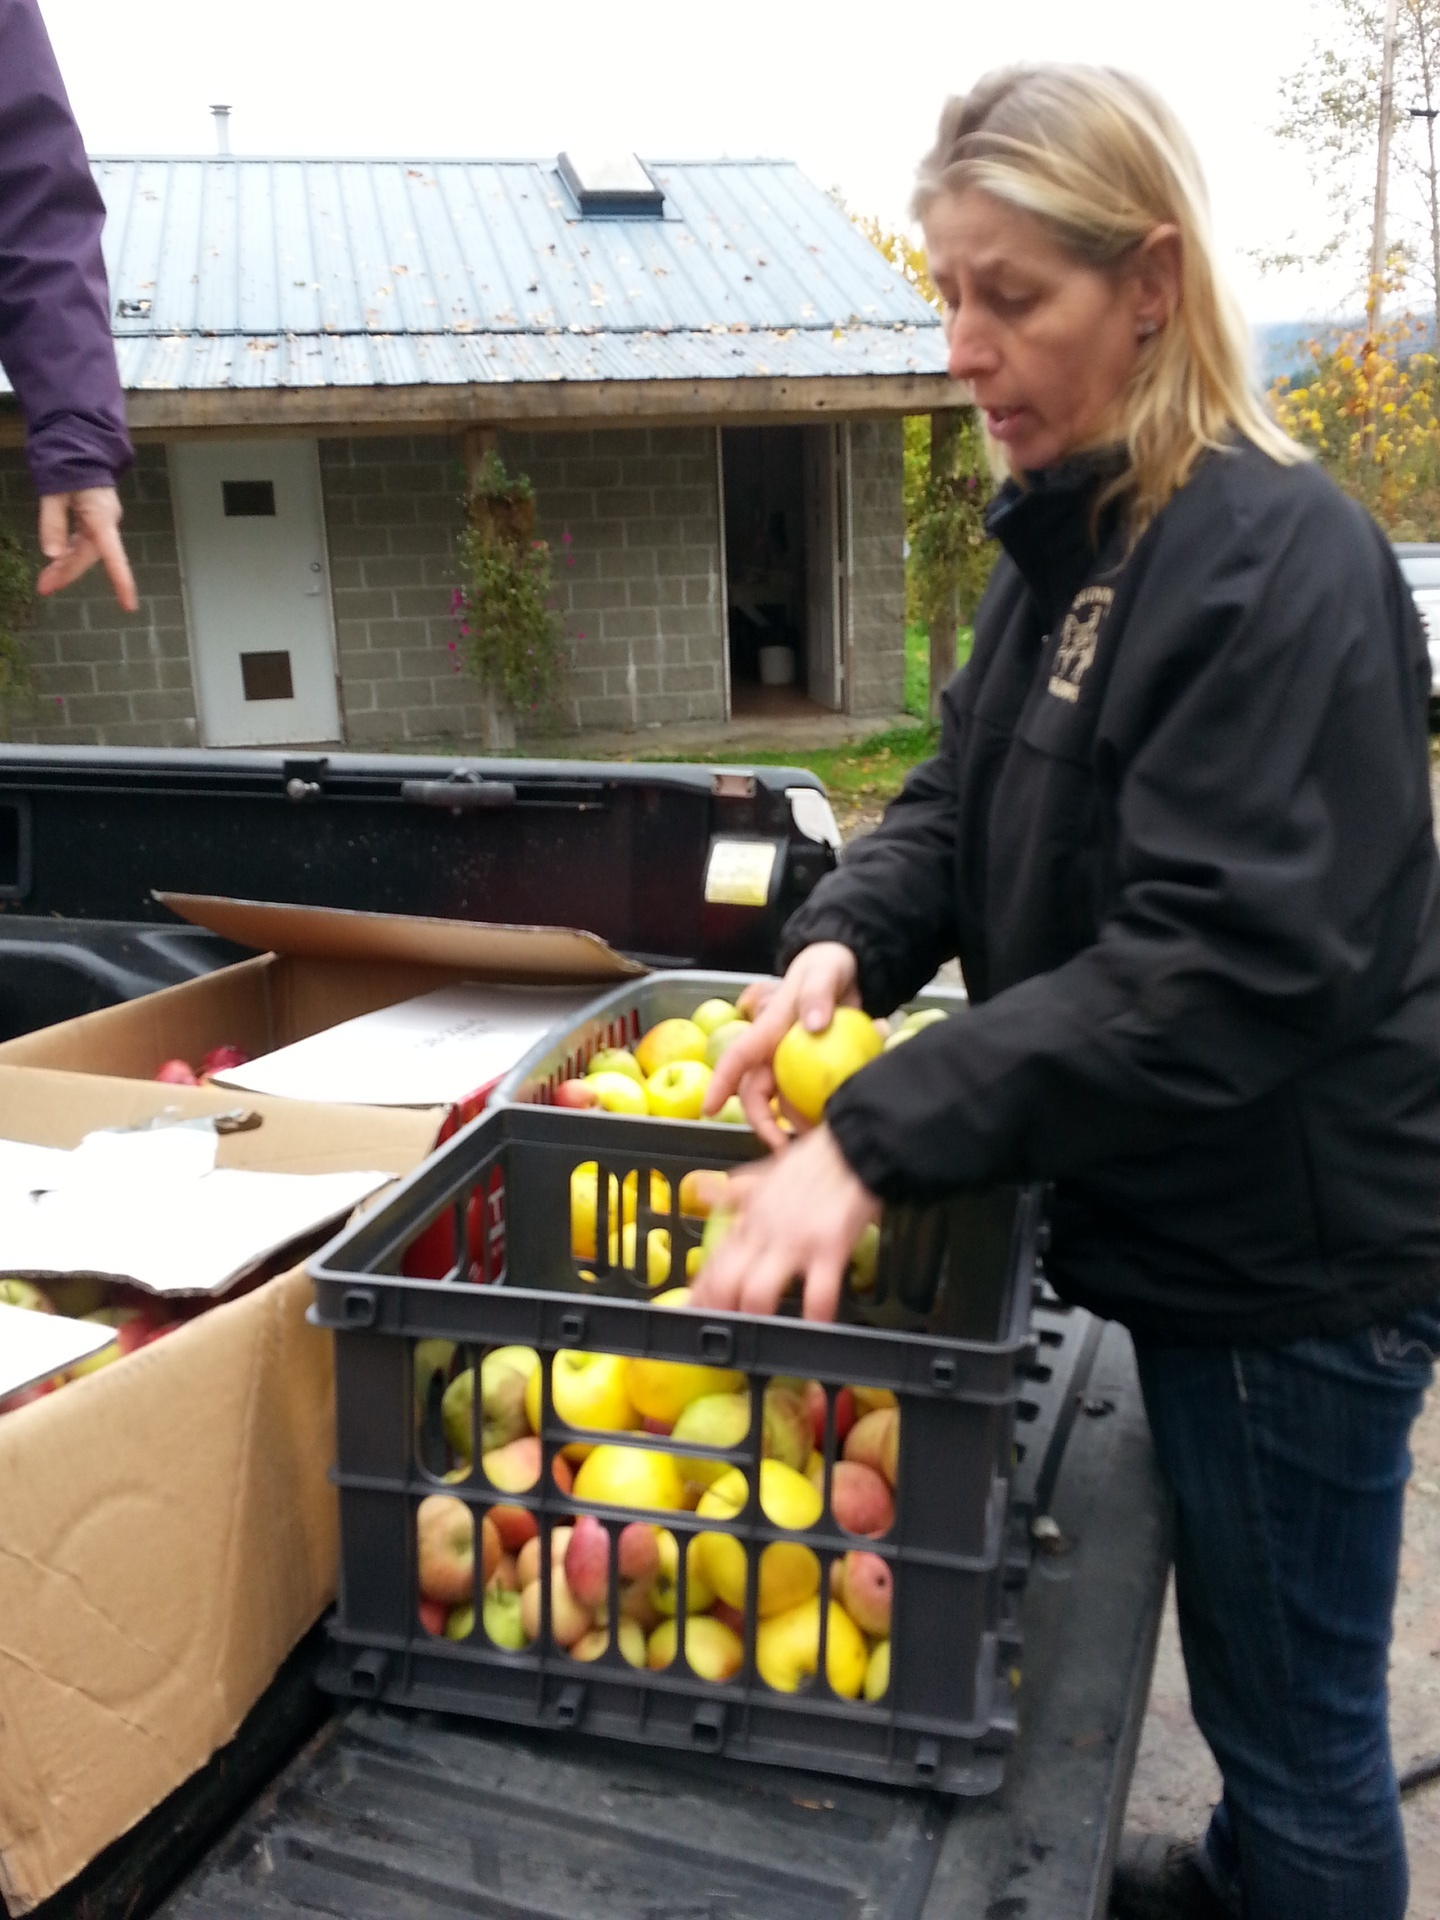 Sorting through the apples